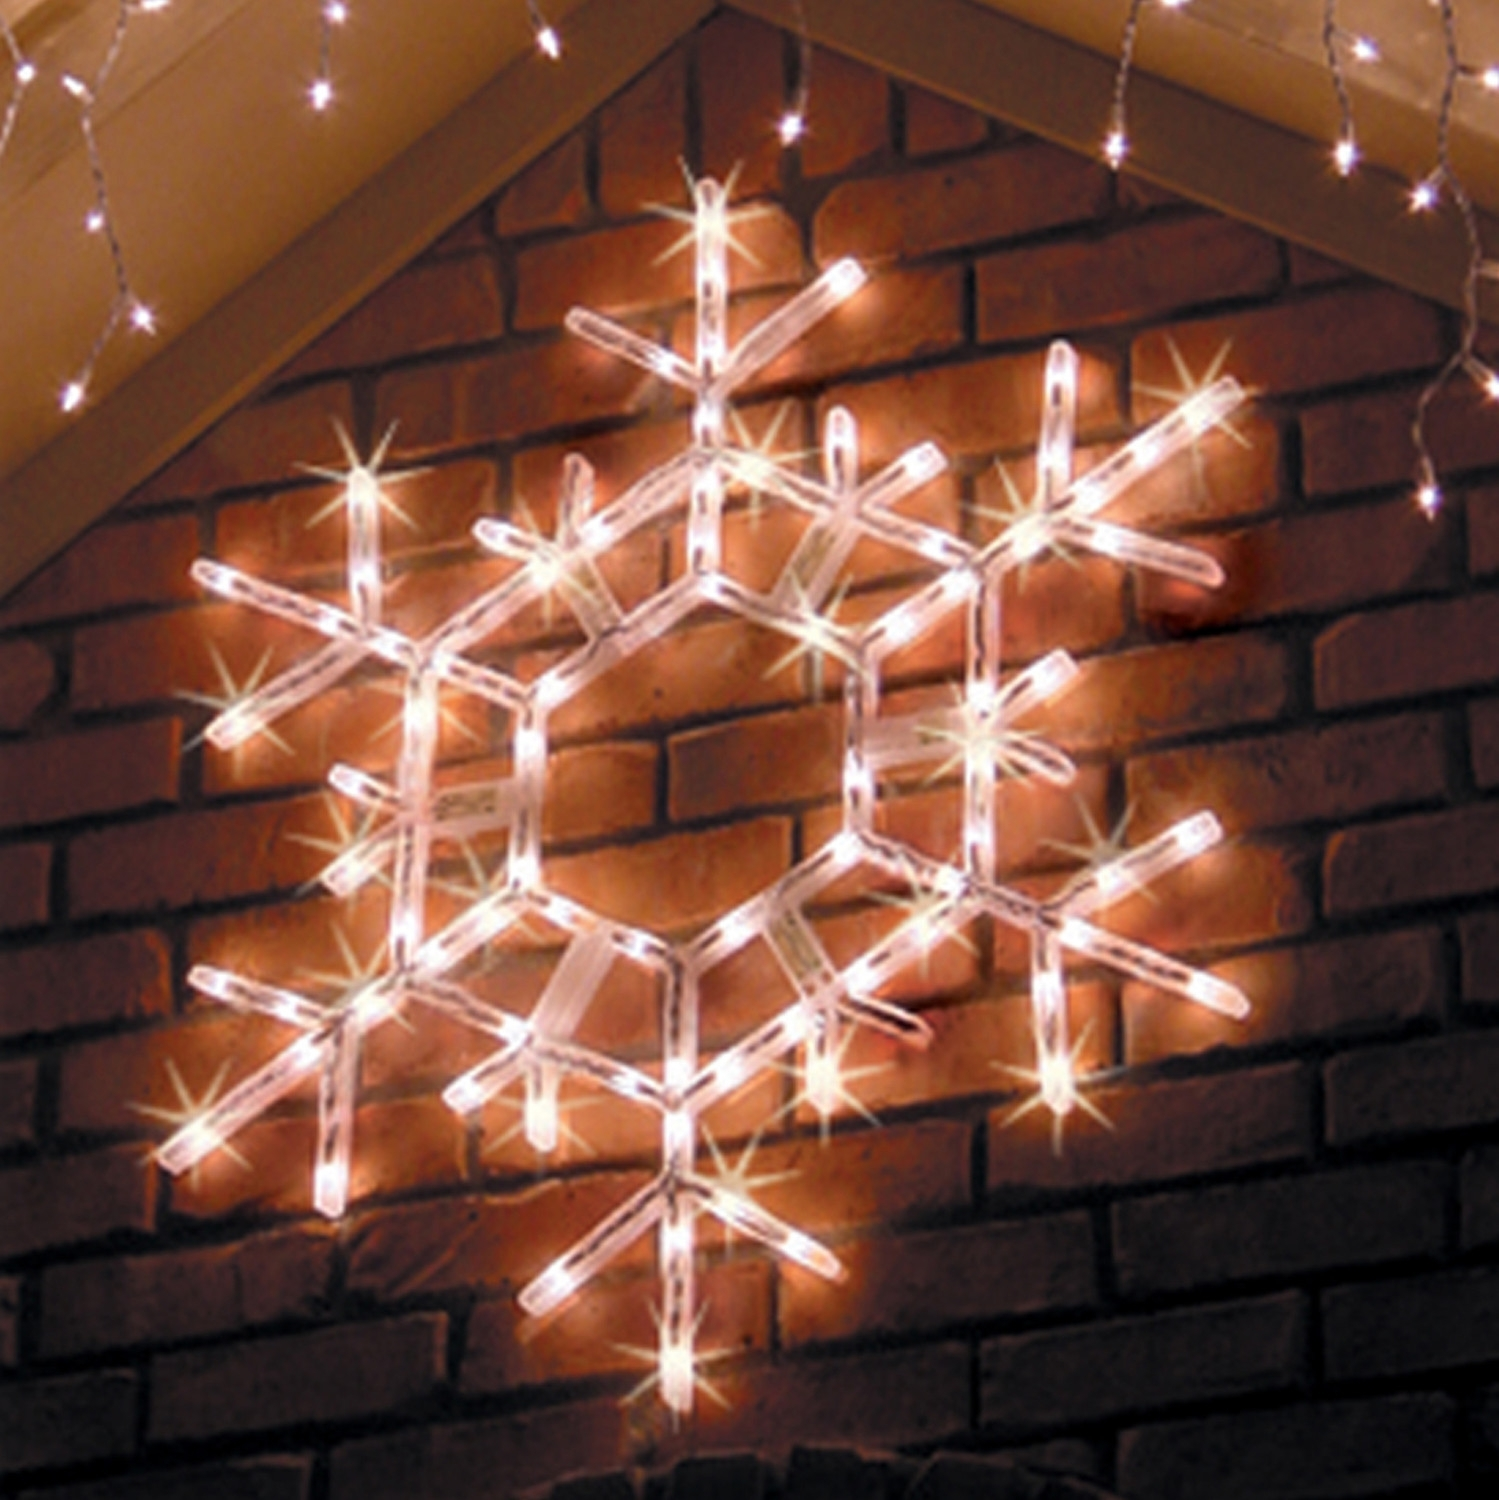 Lighted Outdoor Yard Decorations | Yard Decorations, Snowflake In Outdoor Hanging Xmas Lights (View 7 of 15)